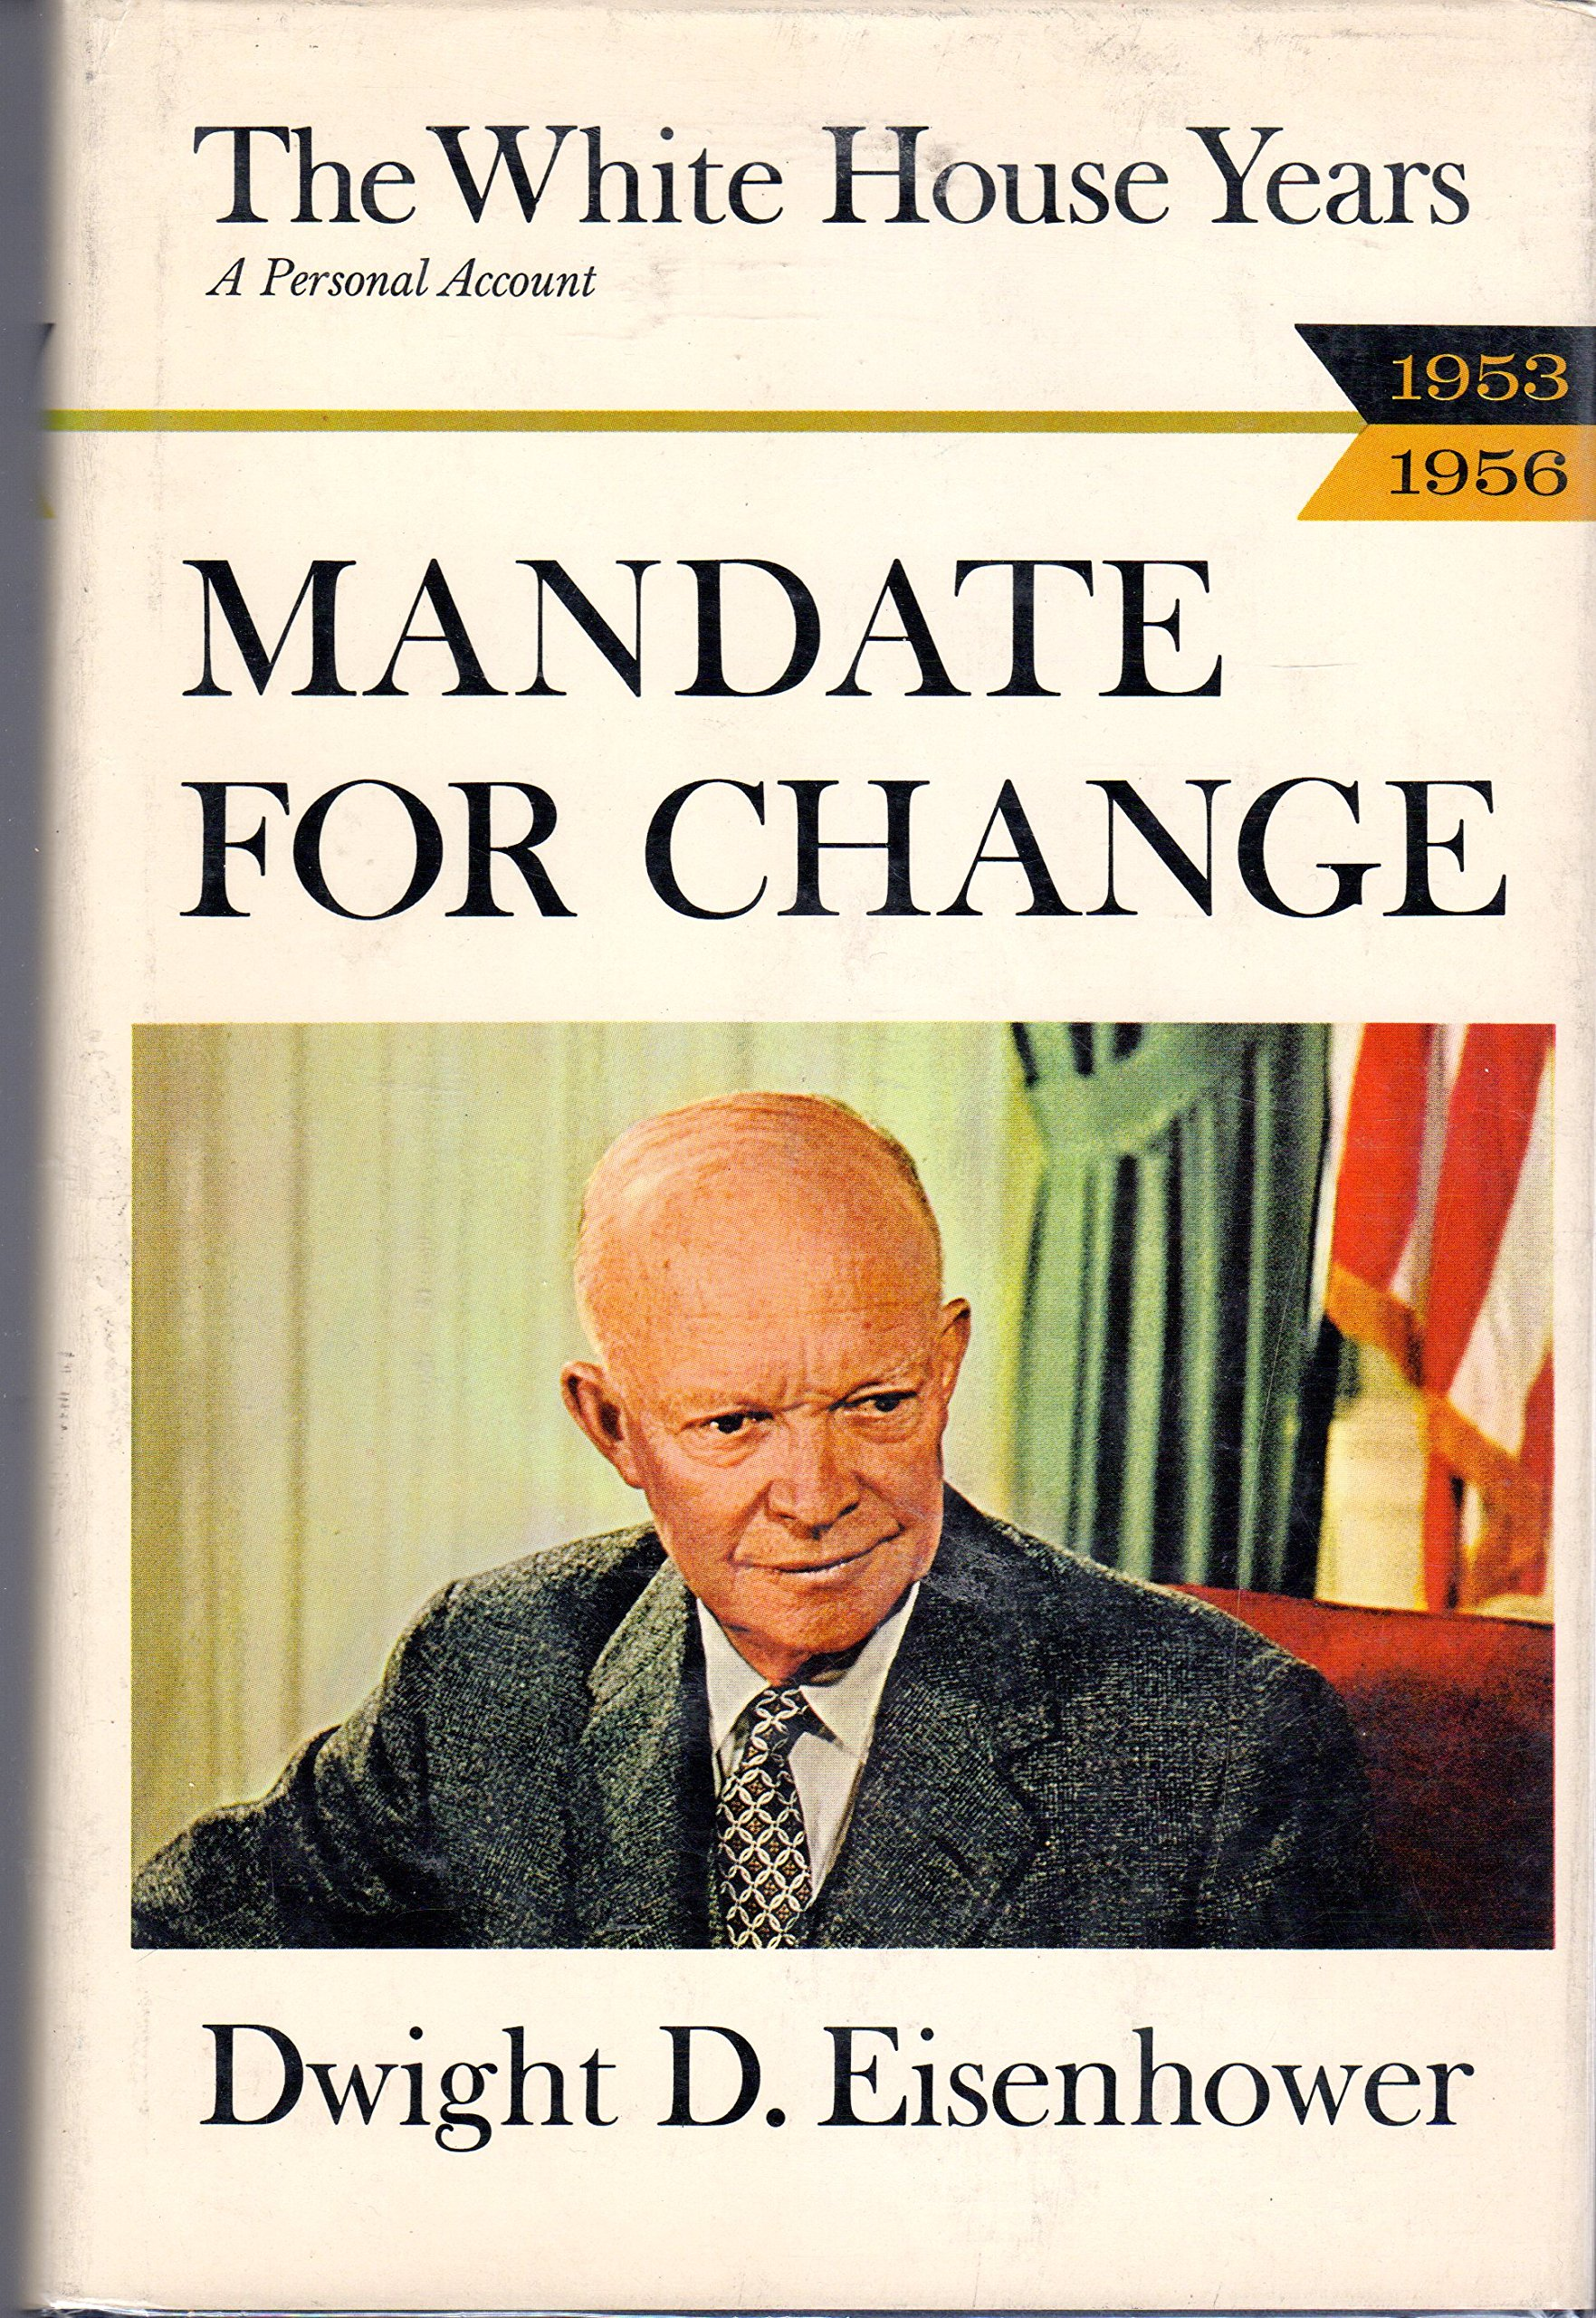 The white house years mandate for change 1953 1956 dwight david the white house years mandate for change 1953 1956 dwight david eisenhower bw photos amazon books publicscrutiny Image collections